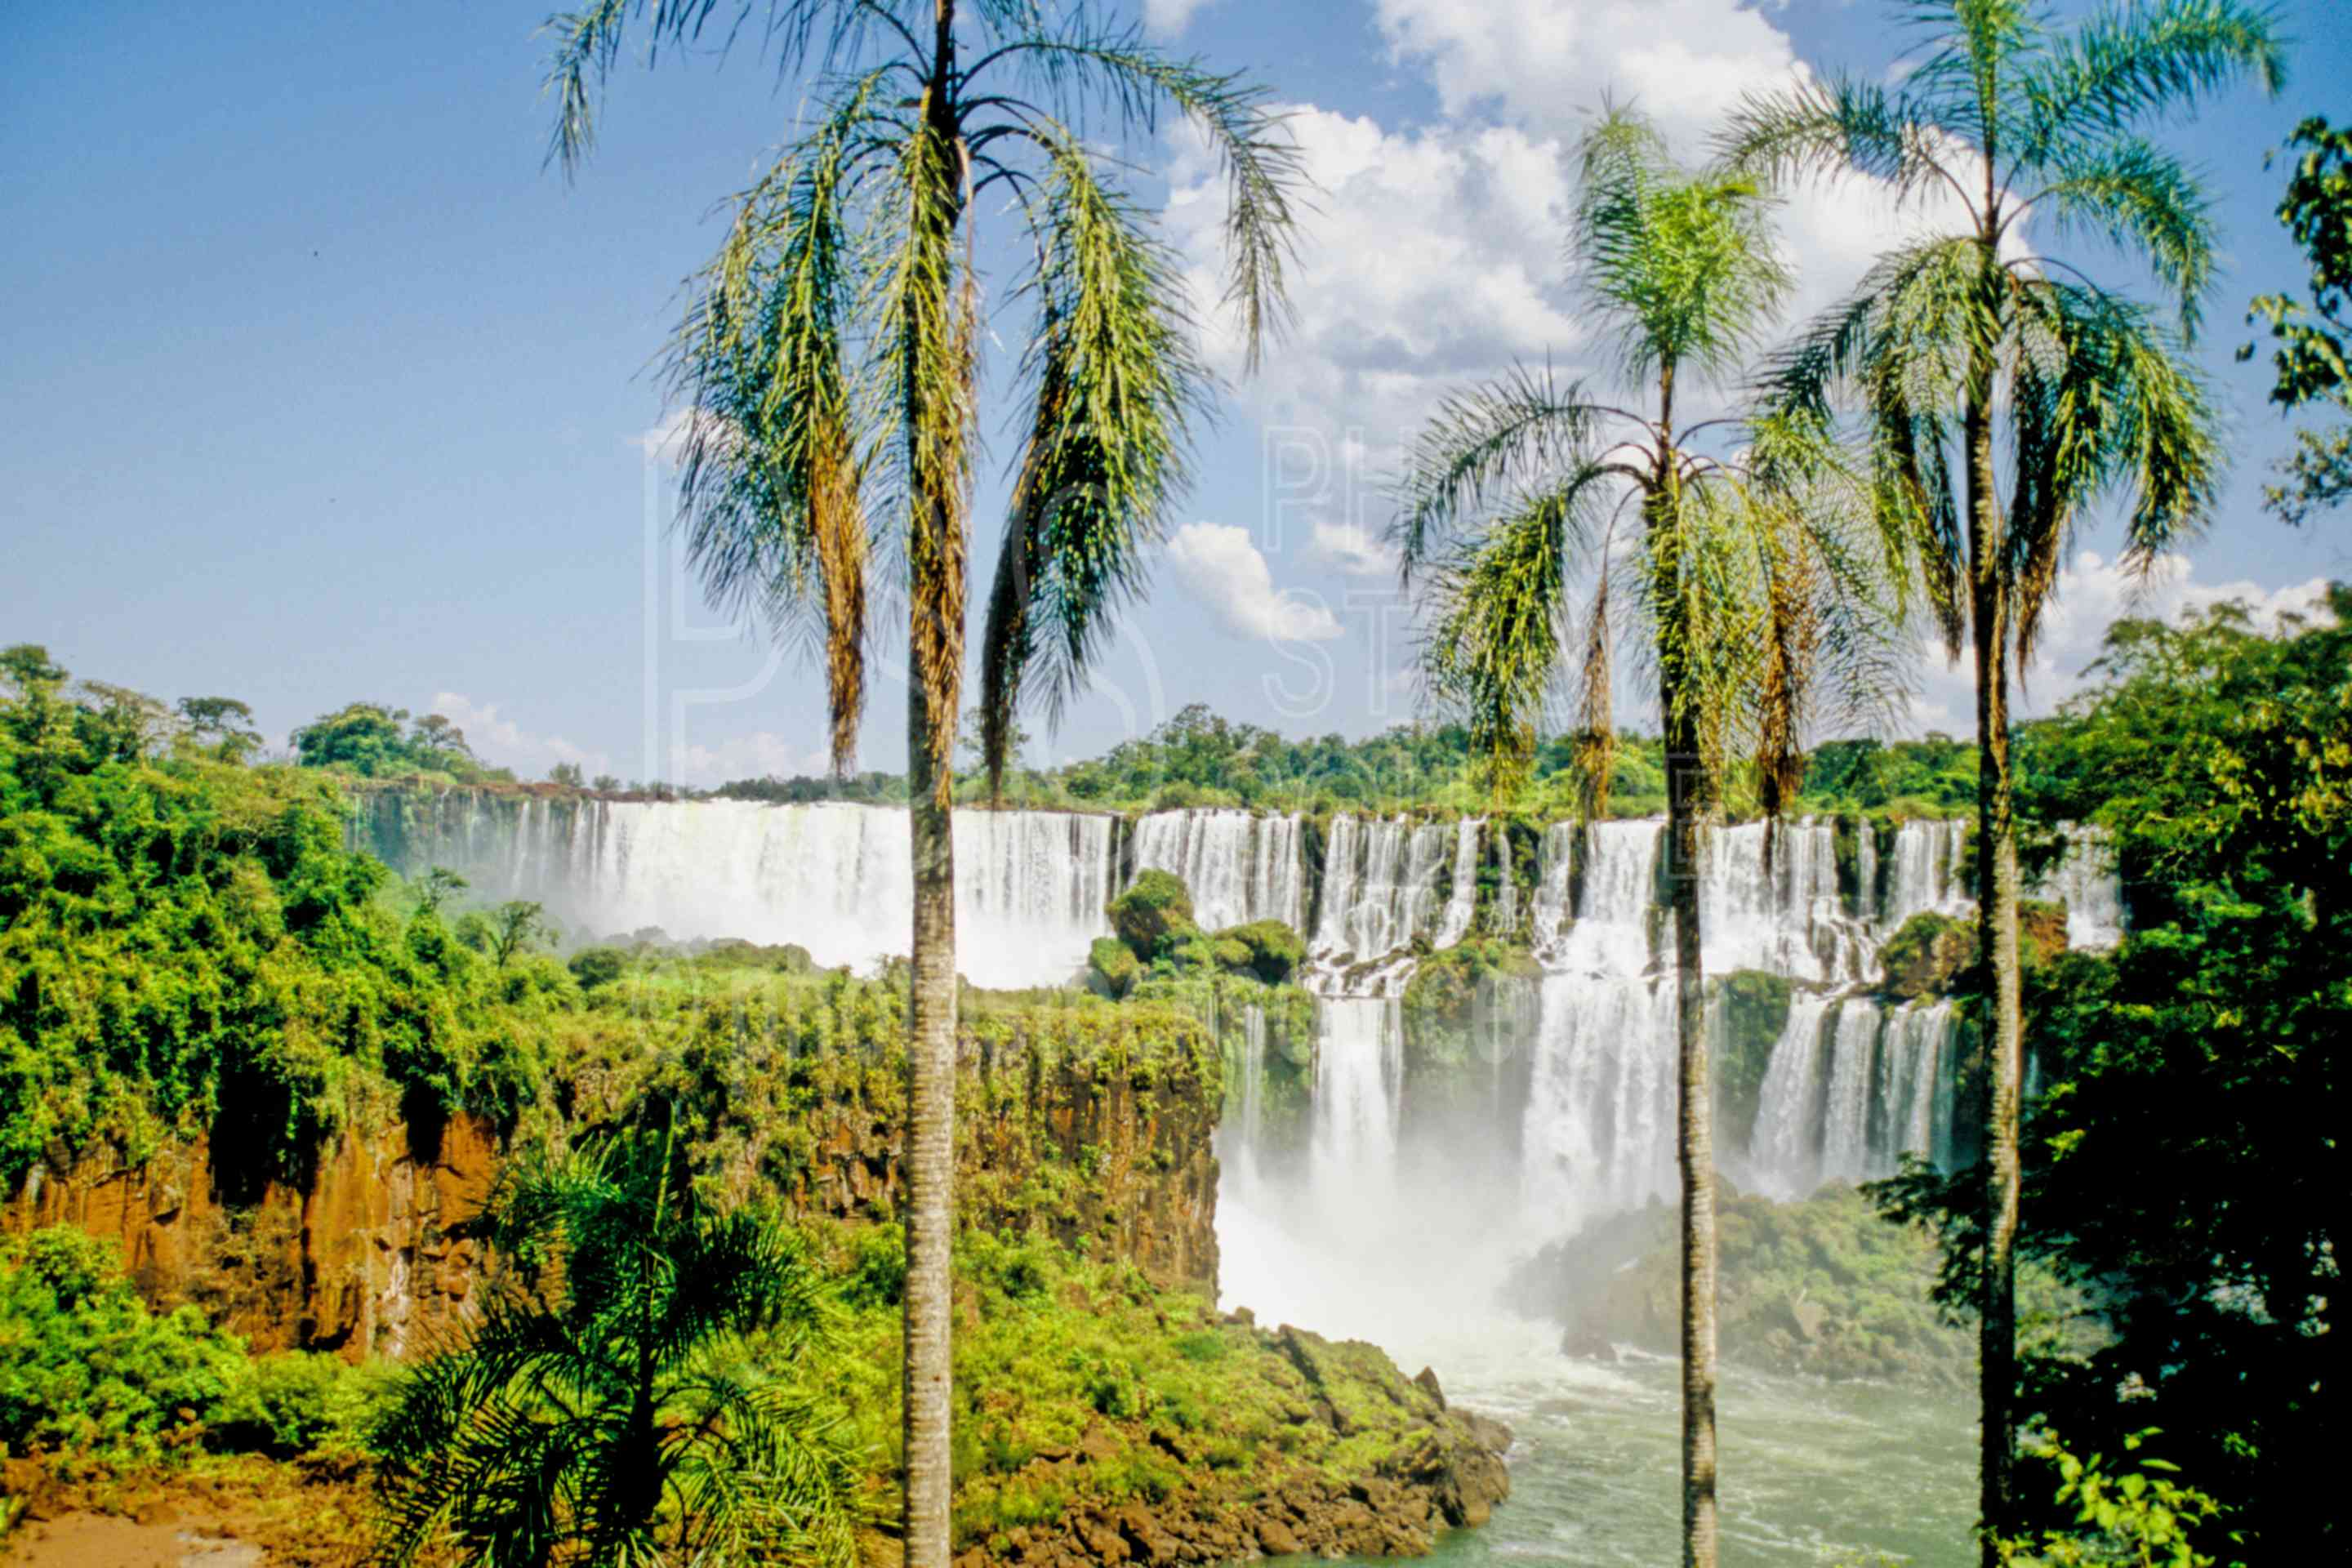 Salto San Martin,lower circuit,palm,palm tree,nature,waterfalls